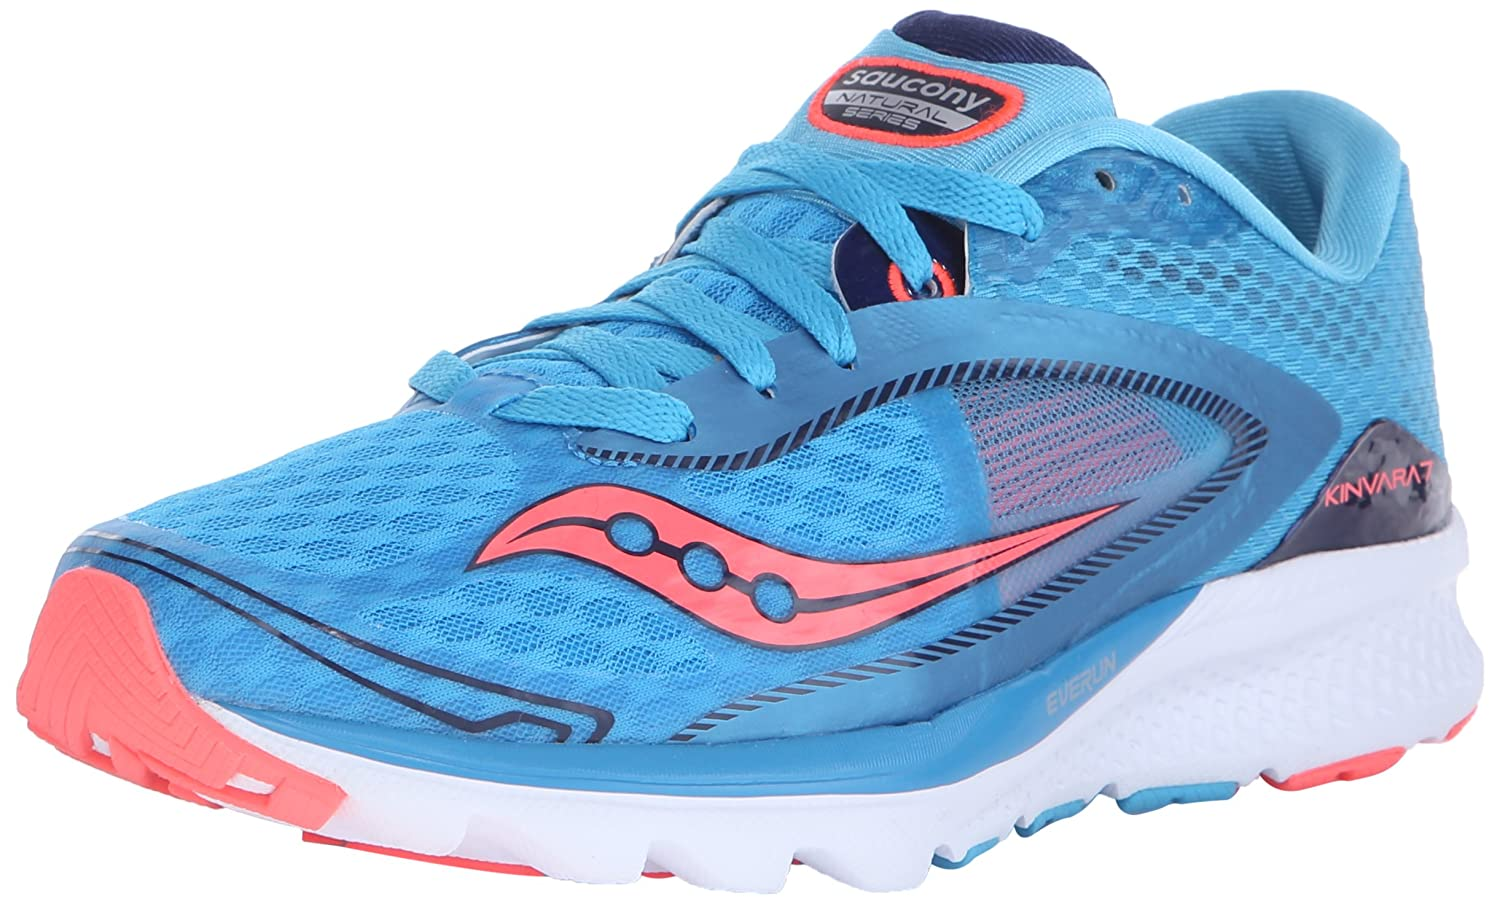 Saucony Women's Kinvara 7 Running Shoe B00YBFJ48O 7.5 B(M) US|Blue/Navy/Citron